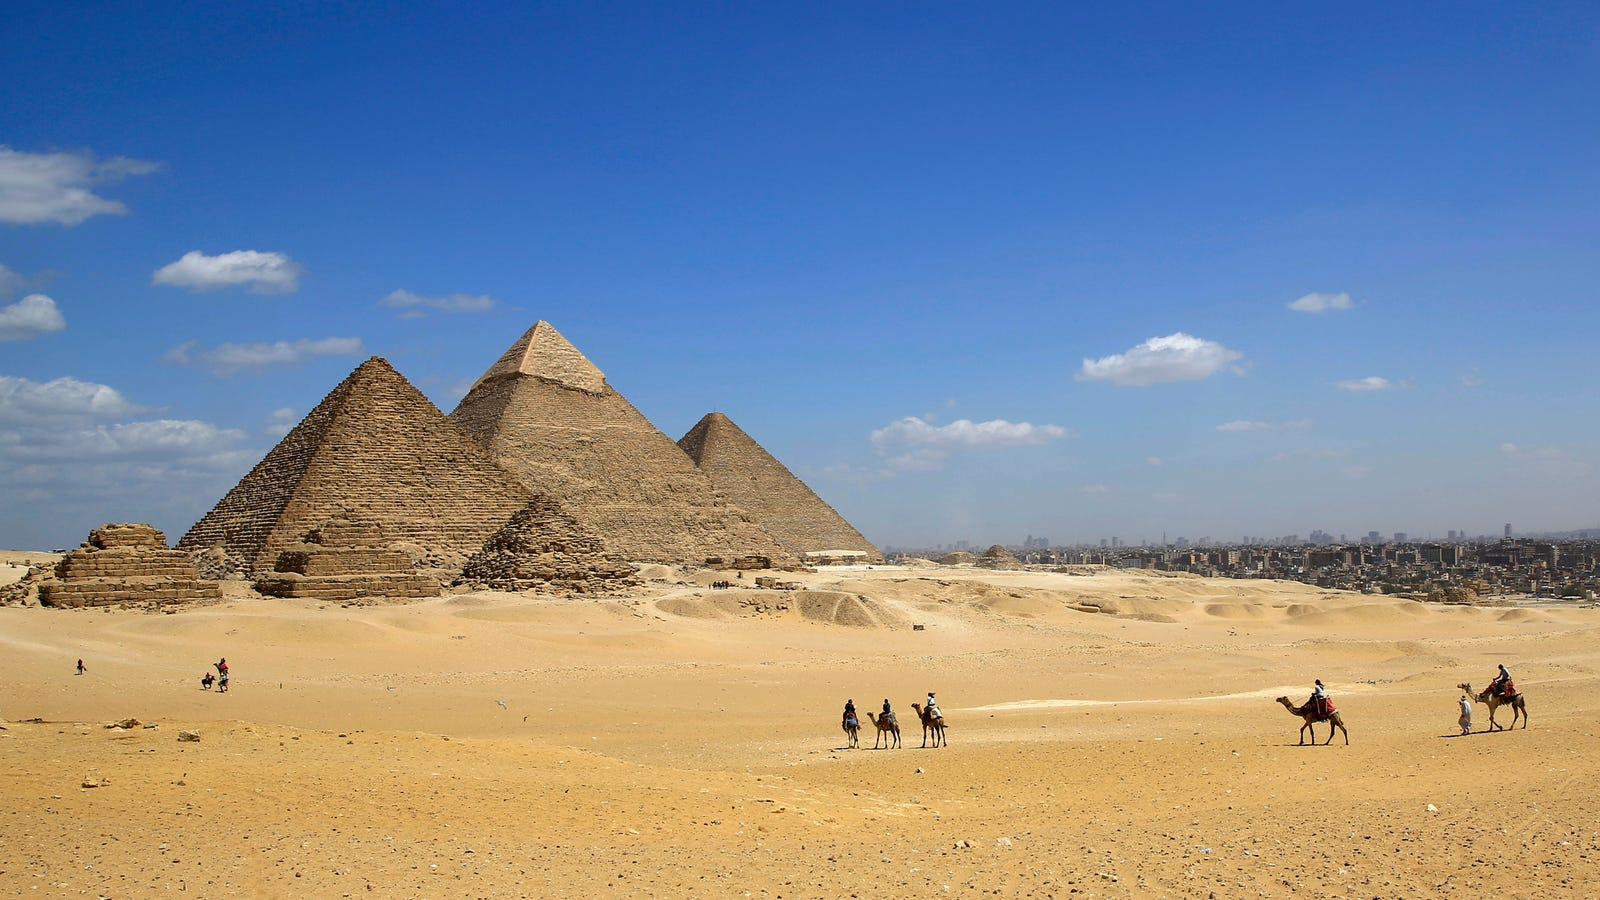 photo of Egyptian Officials Are Pissed About an Alleged Nude Photoshoot on the Great Pyramid image